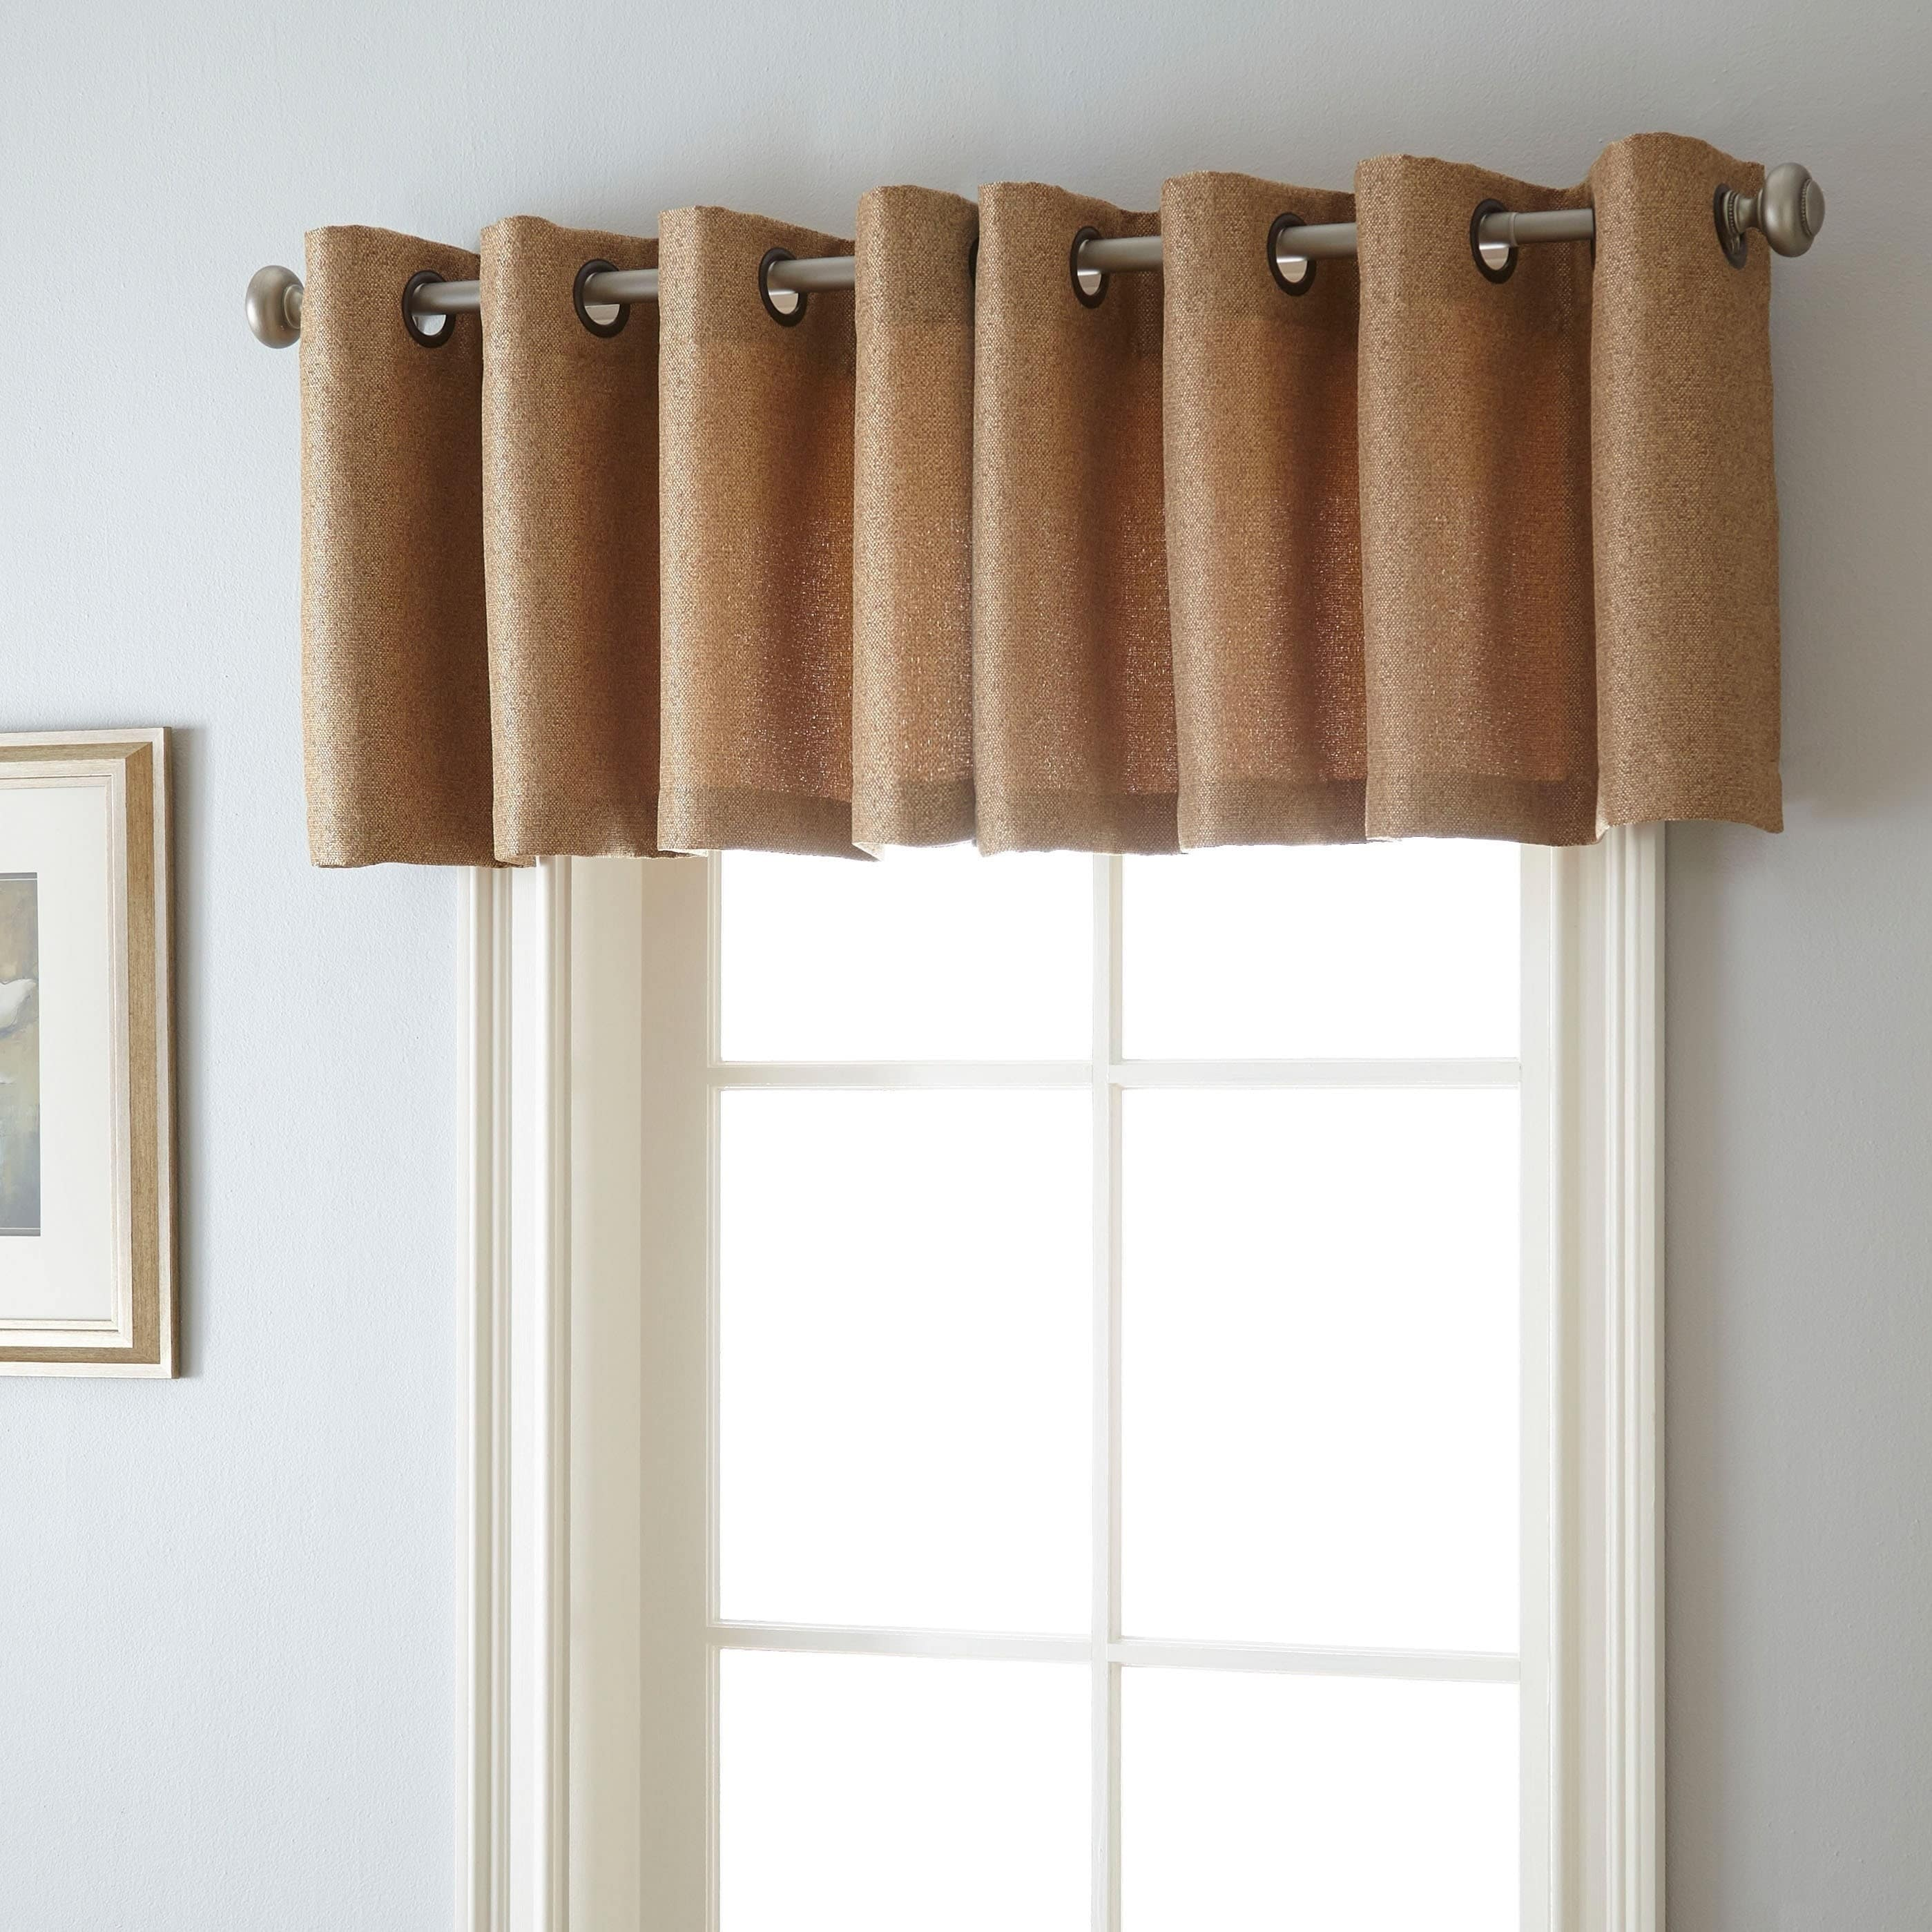 Nanshing Aruba 54-inch x 18-inch Grommet-top Curtain Valance - Free ... for Grommet Curtains With Valance  599kxo